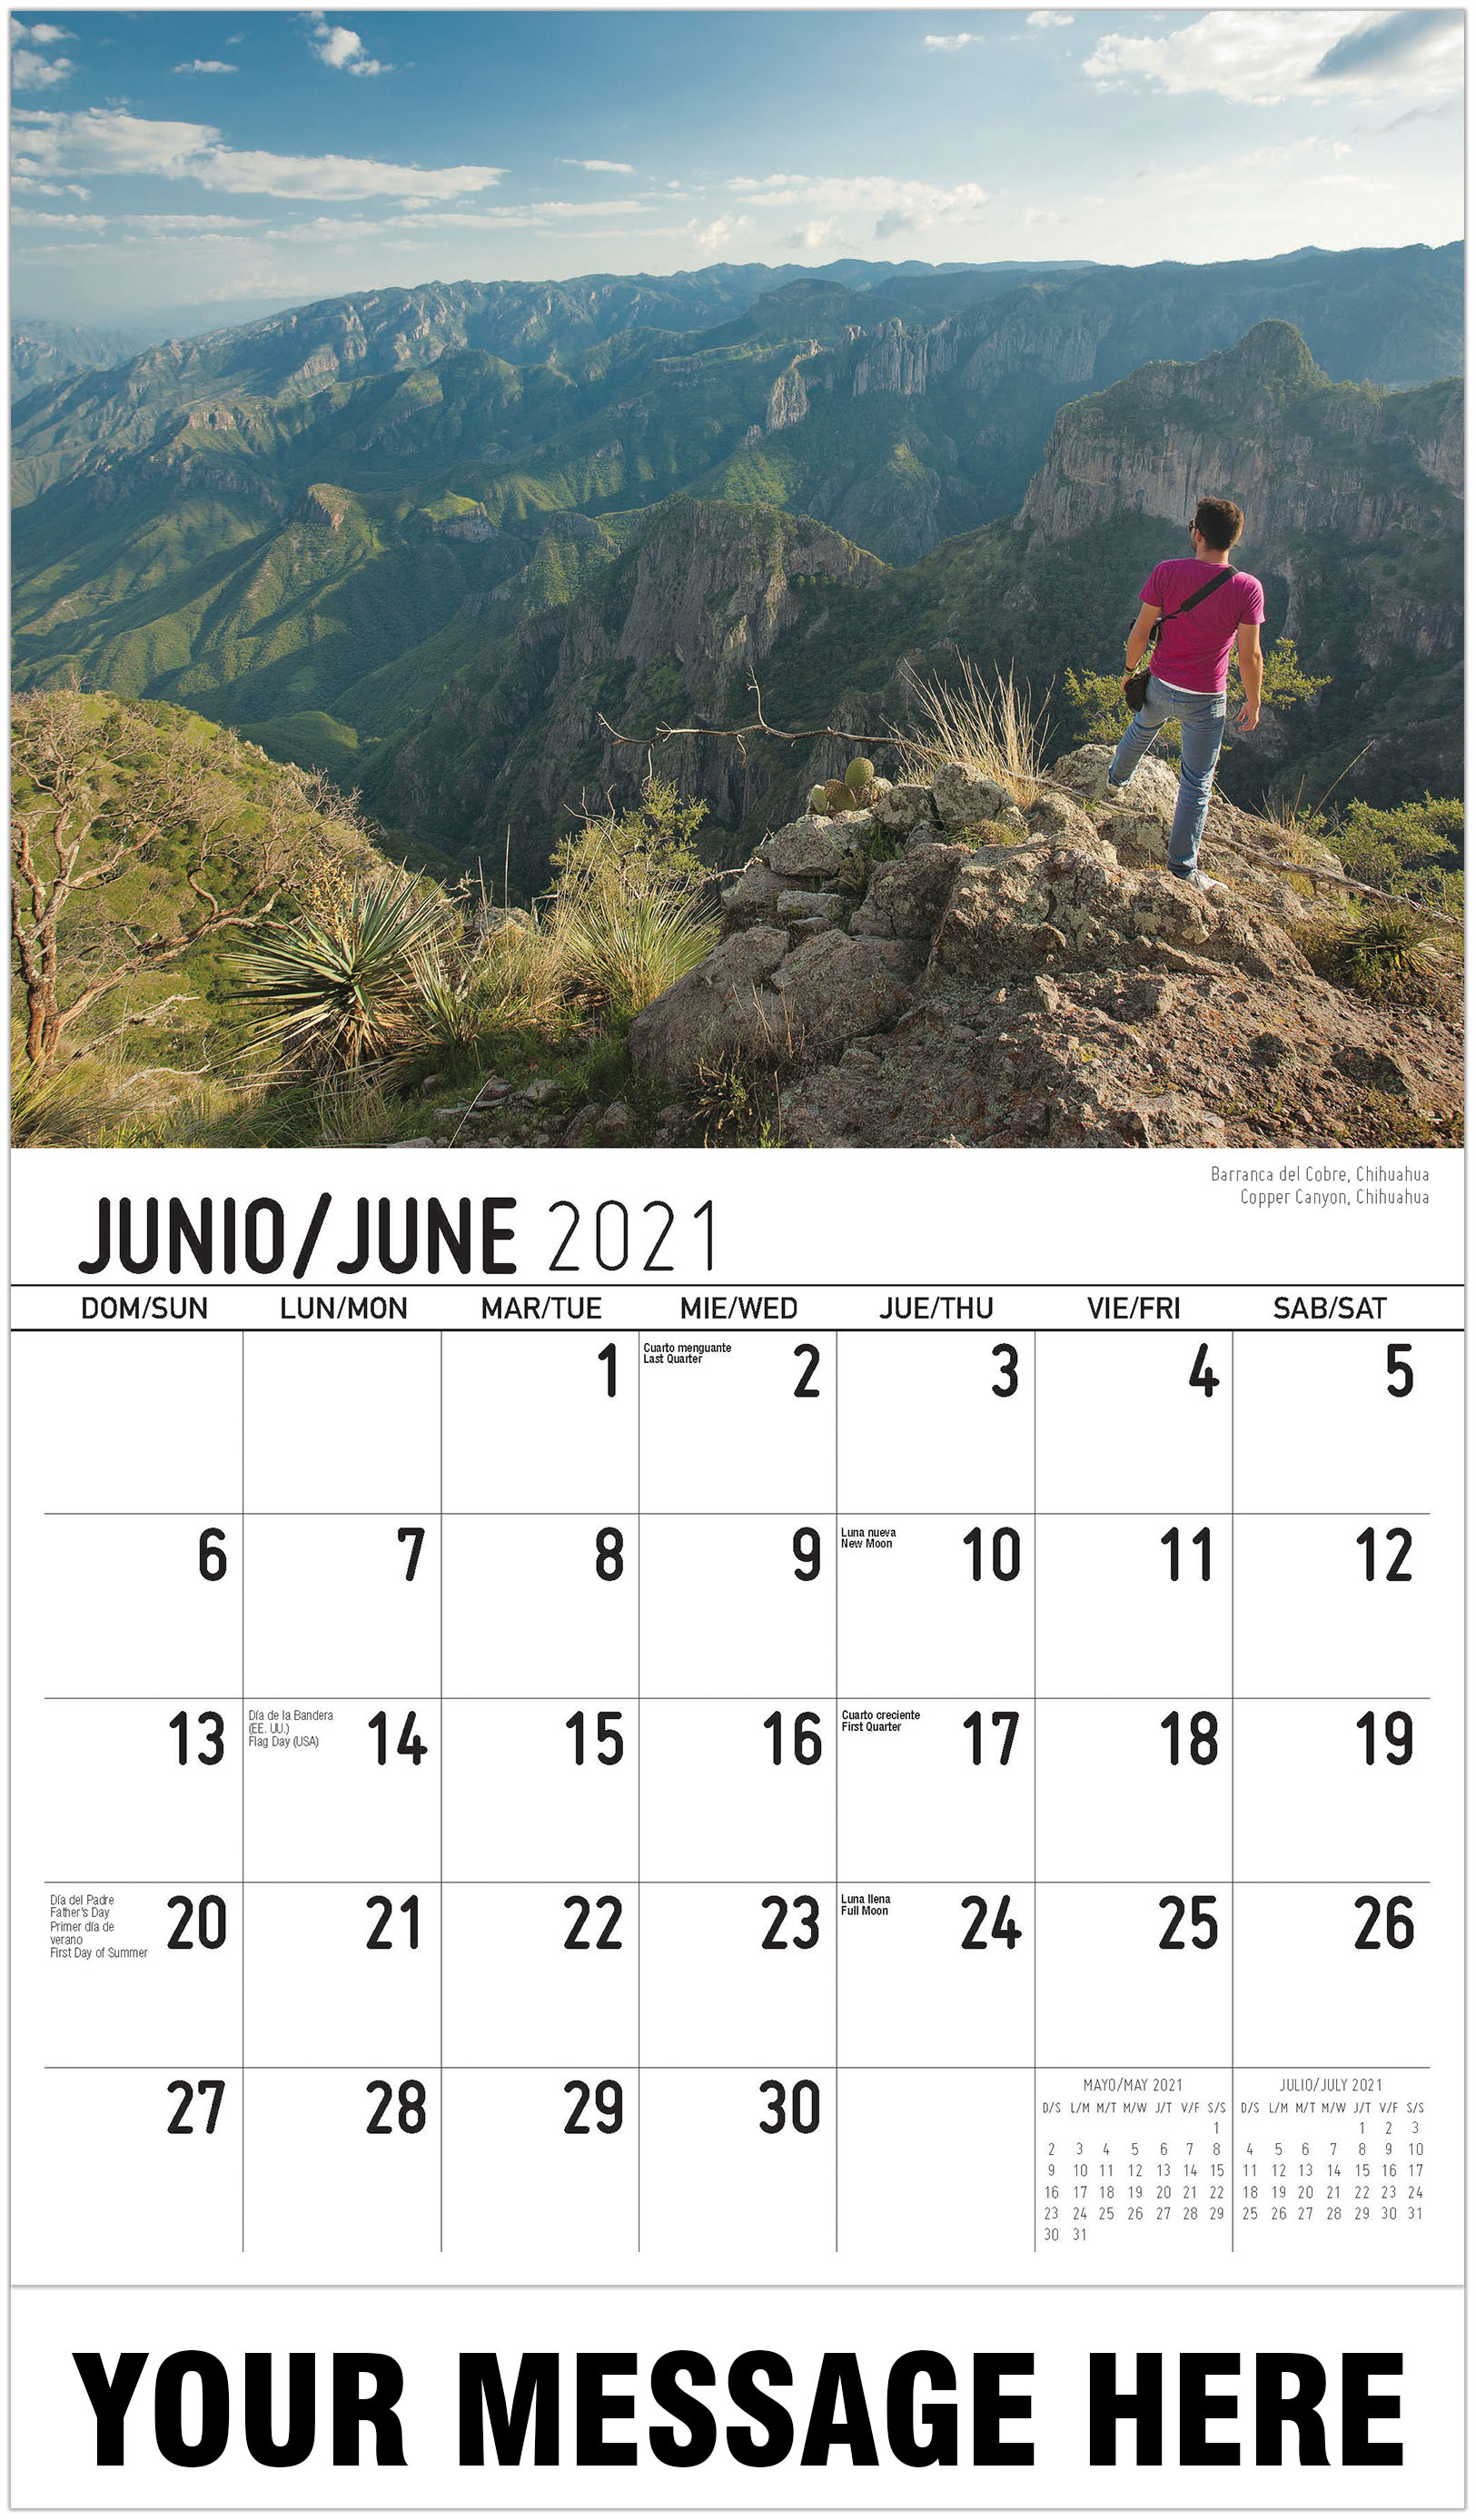 Scenes Of Mexico (Spanish-English Bilingual) intended for Mexican Calendar 2021 With St Names